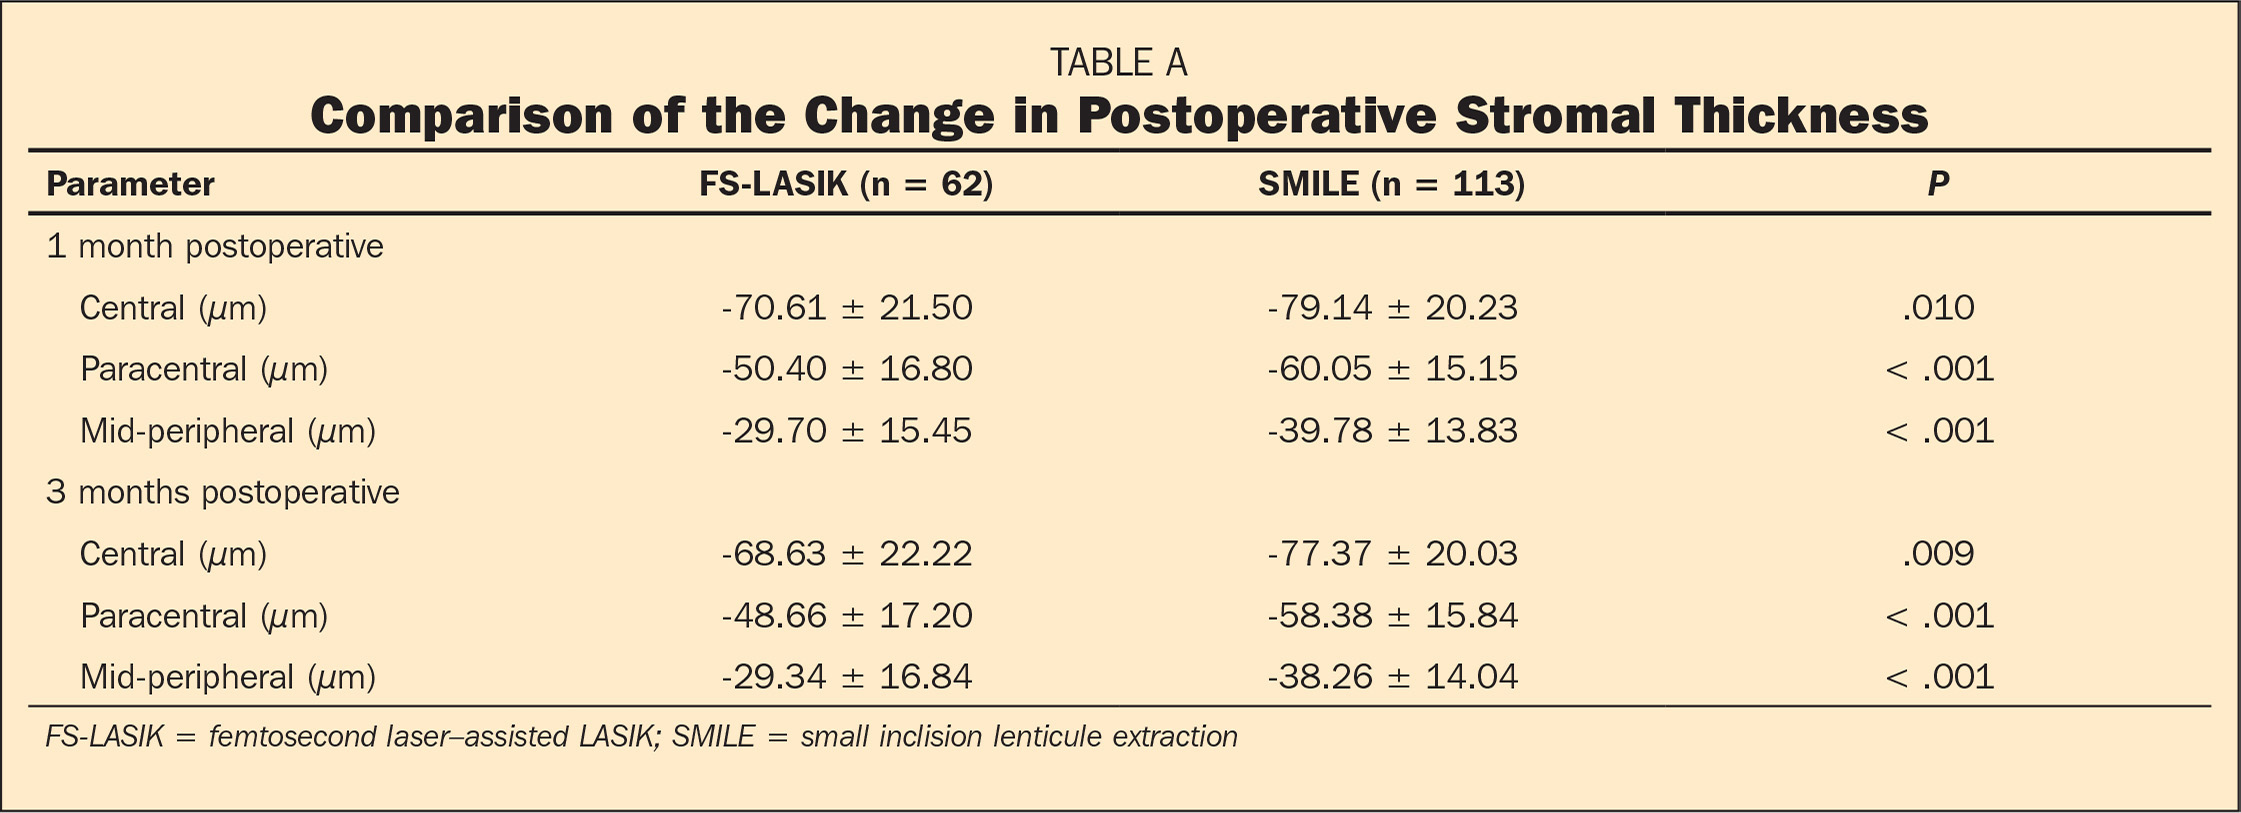 Comparison of the Change in Postoperative Stromal Thickness